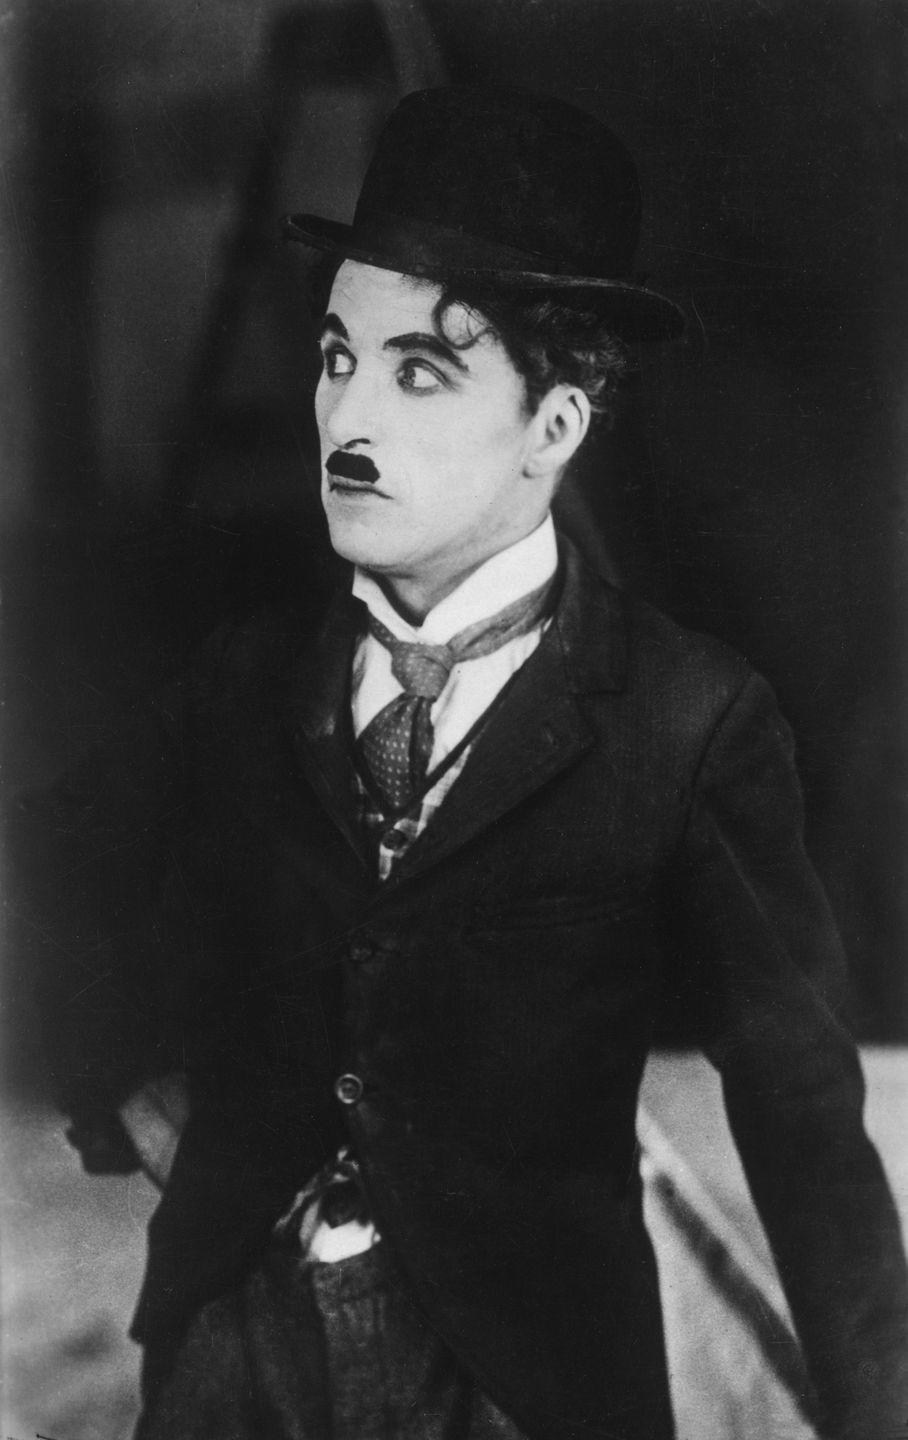 <p>Charlie Chaplin continued his winning streak, writing and starring in the silent film, <em>The Circus</em>. Charles kept up its streak, too, at as the No. 5 for boys (along with Robert, James, and John.) Mary, Betty, and newcomer Barbara were the top three names for girls.</p>